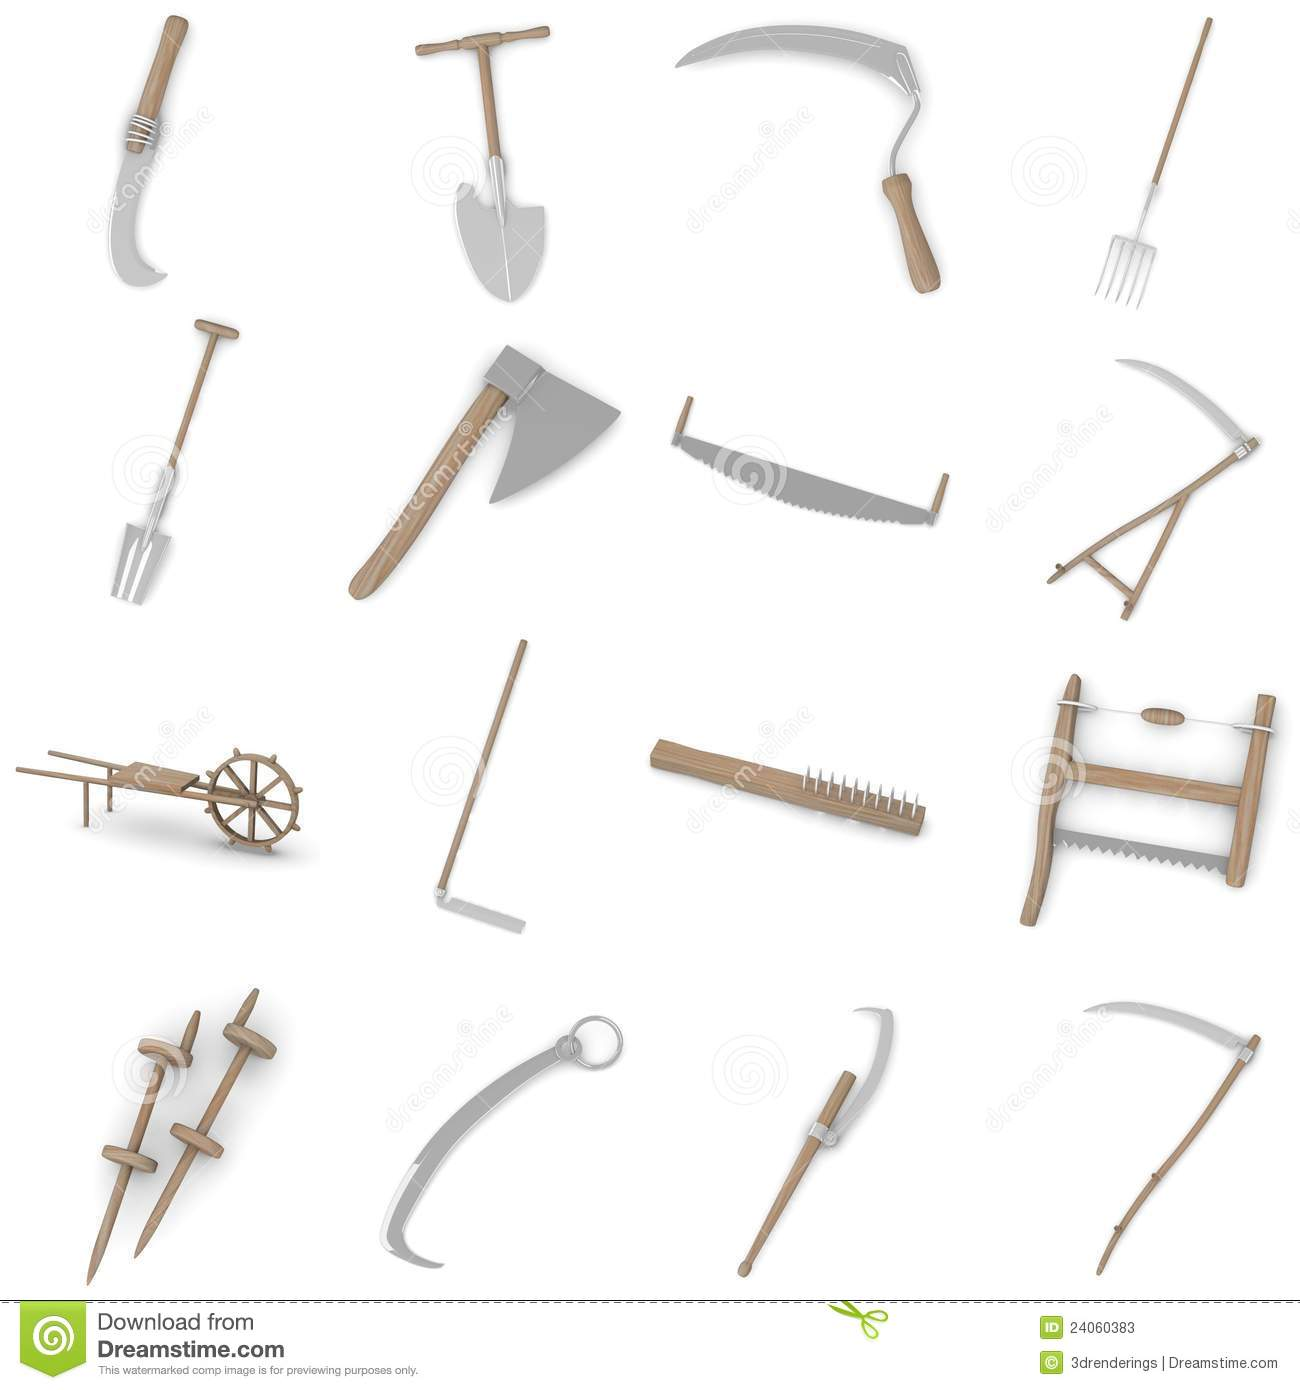 Farming Tools - 16 Stock Photos - Image: 24060383